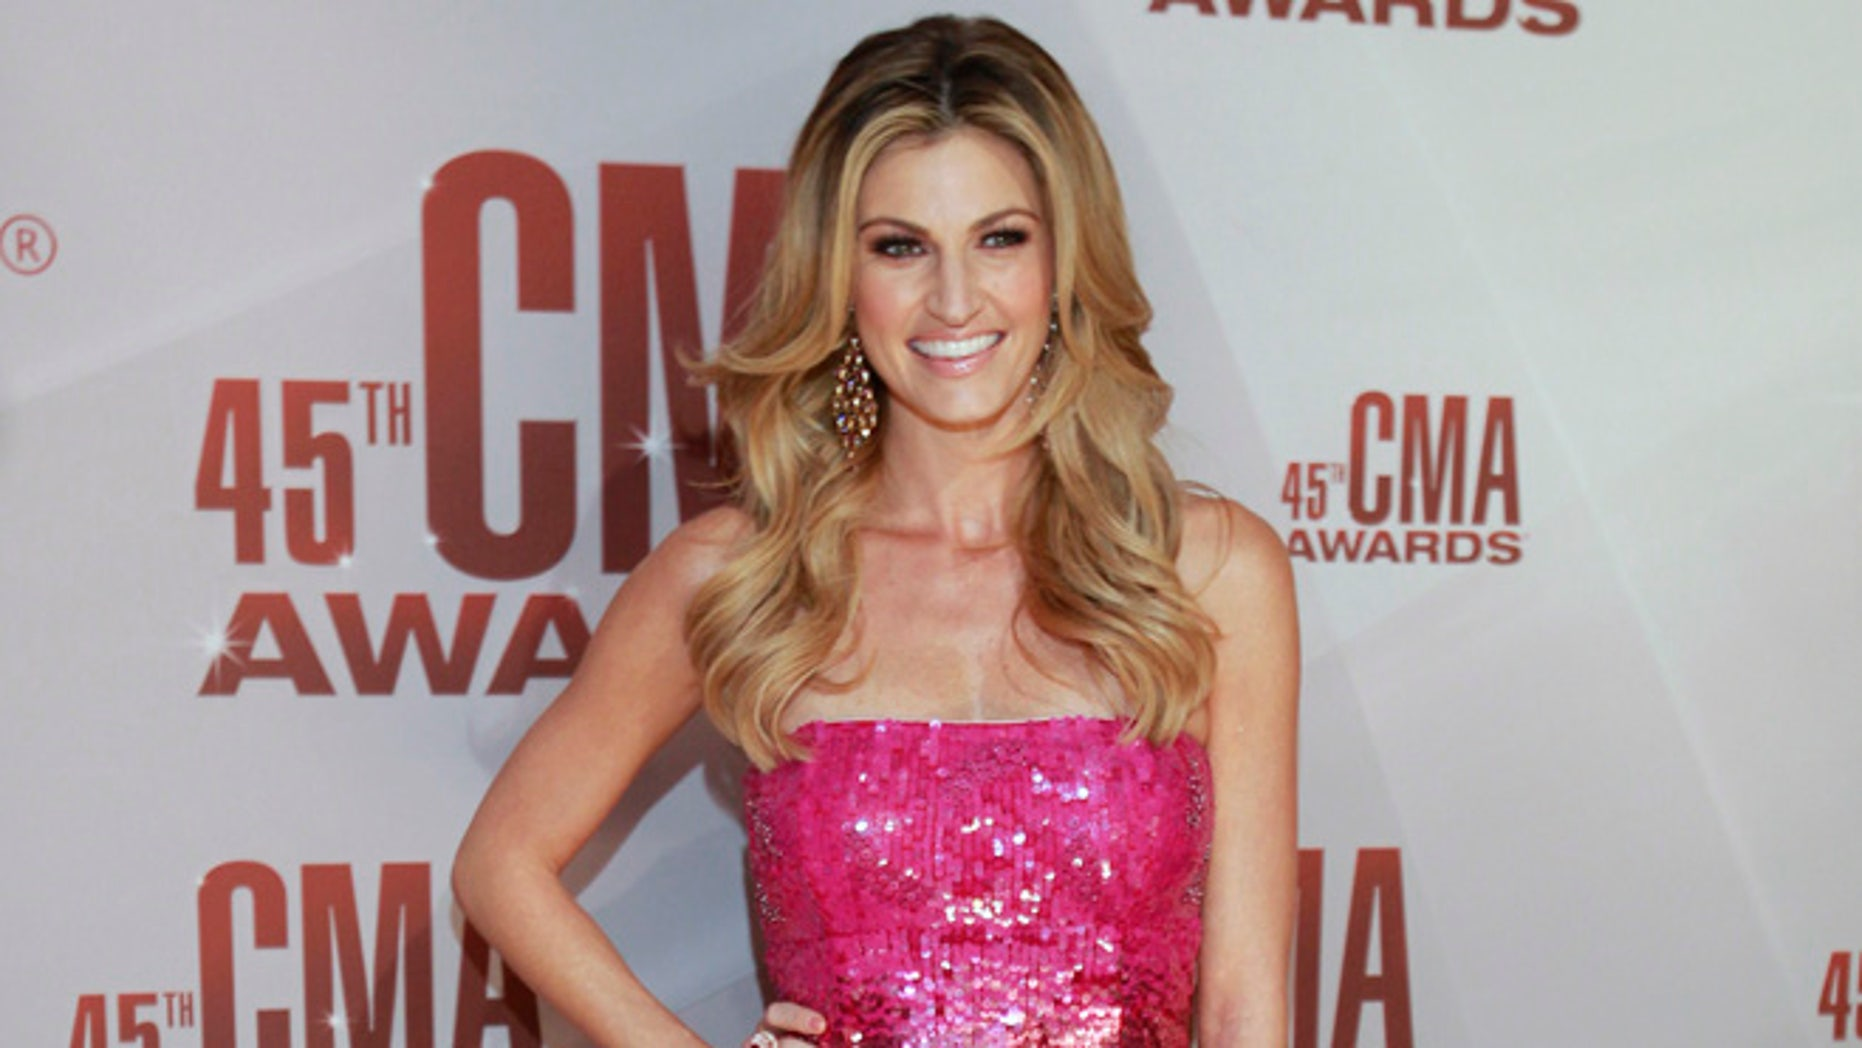 Erin Andrews Marries Nhl Star Jarret Stoll Fox News